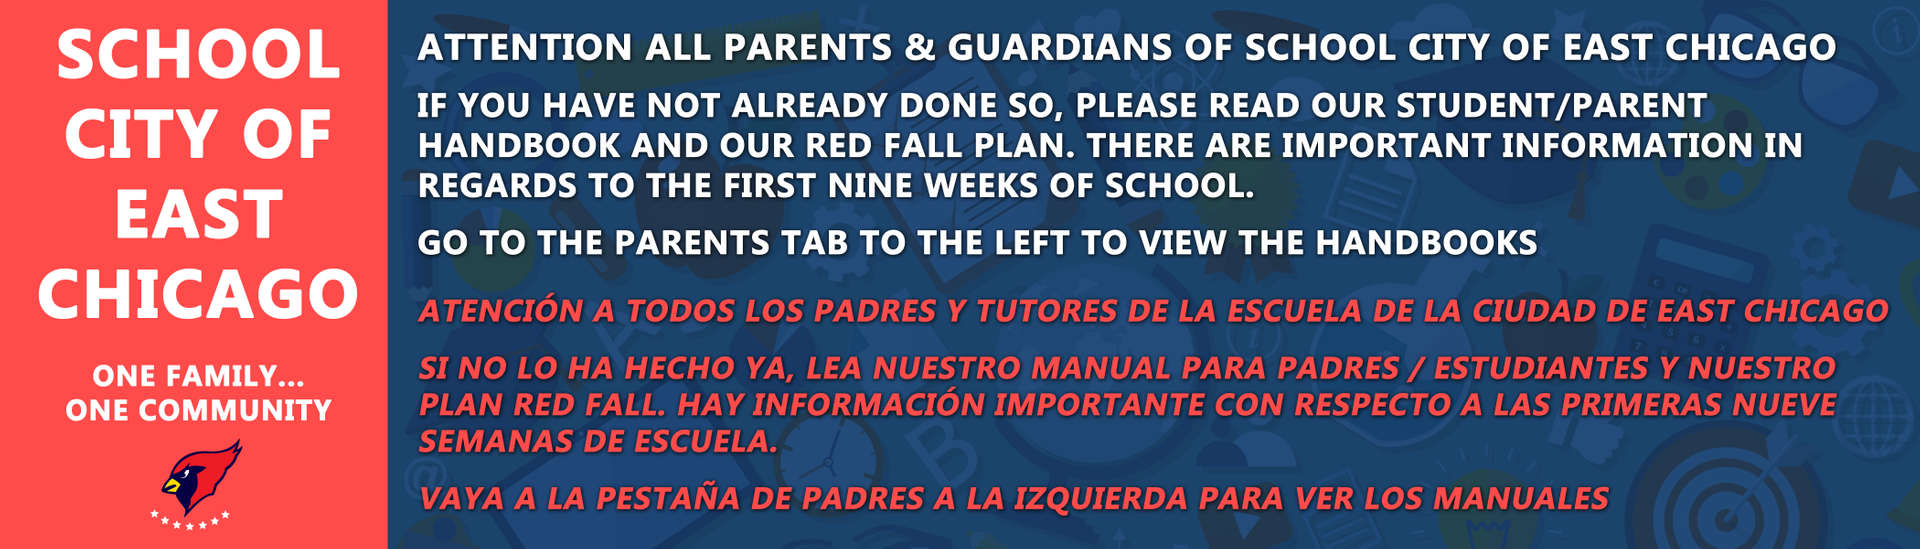 Please, read our Student Teacher Handbook if you have not already done so